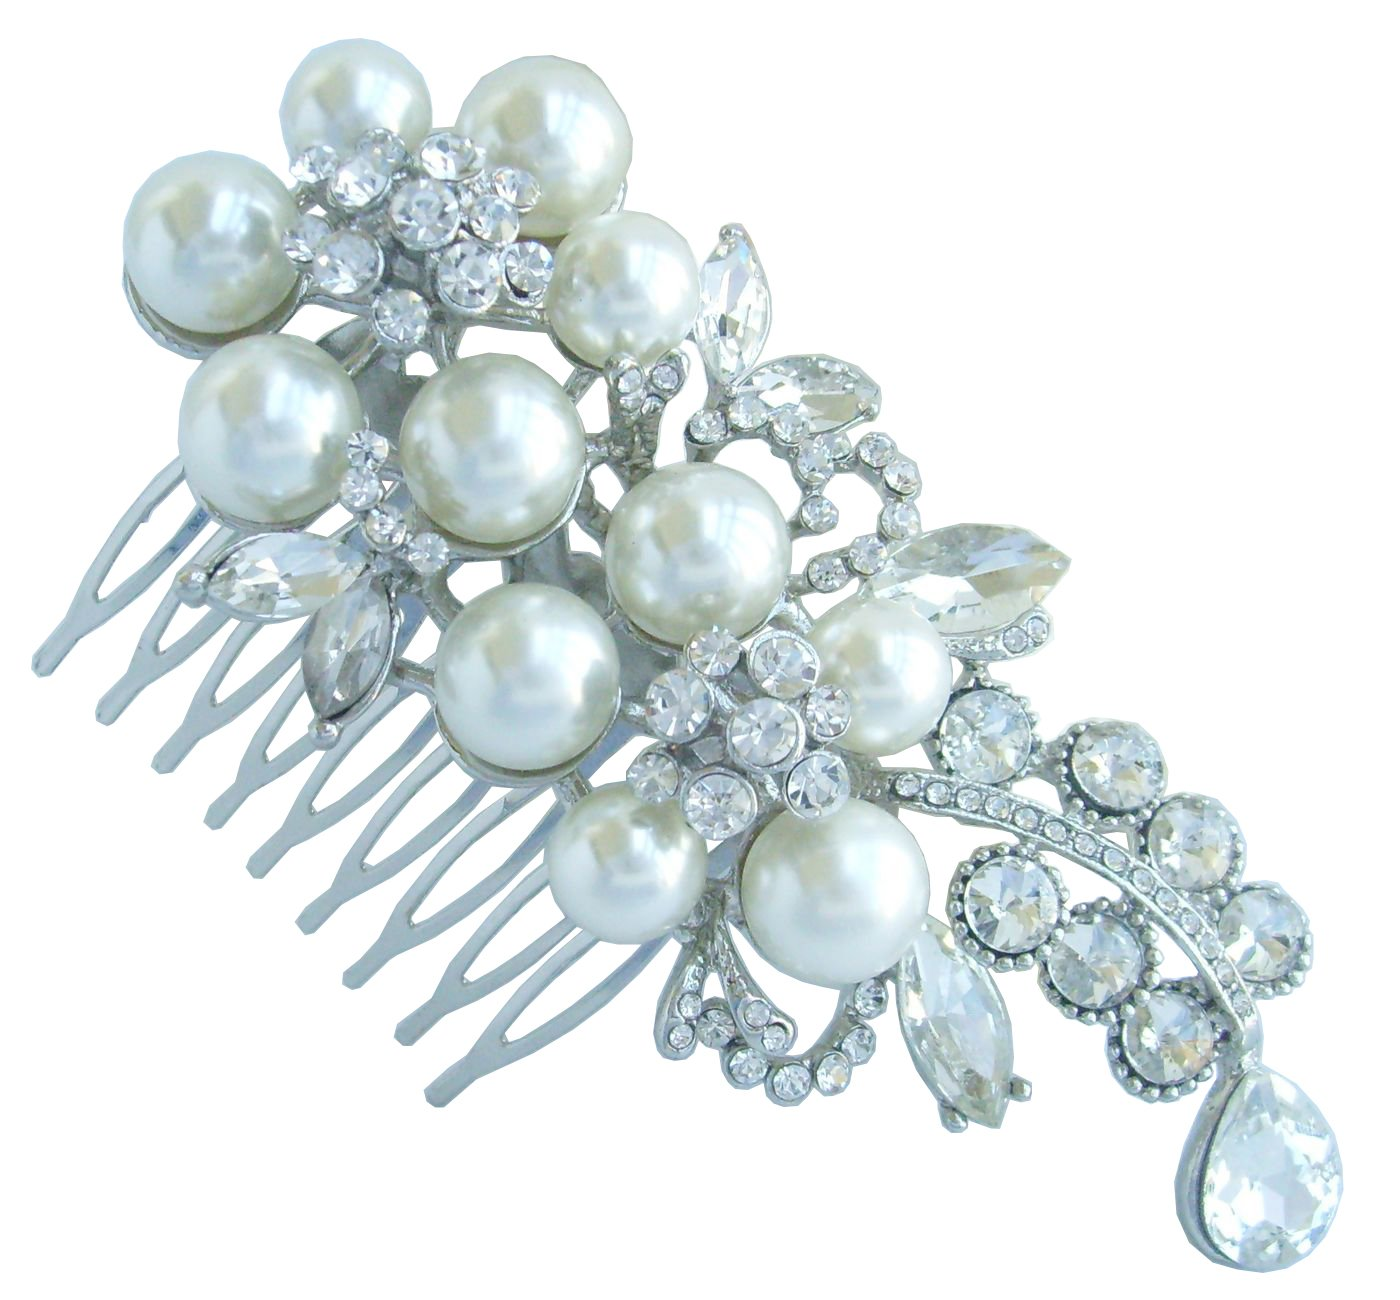 Sindary Trendy Wedding 4.33'' Pearl Rhinestone Crystal Flower Hair Comb Headpiece Tiara Ornament Jewelry